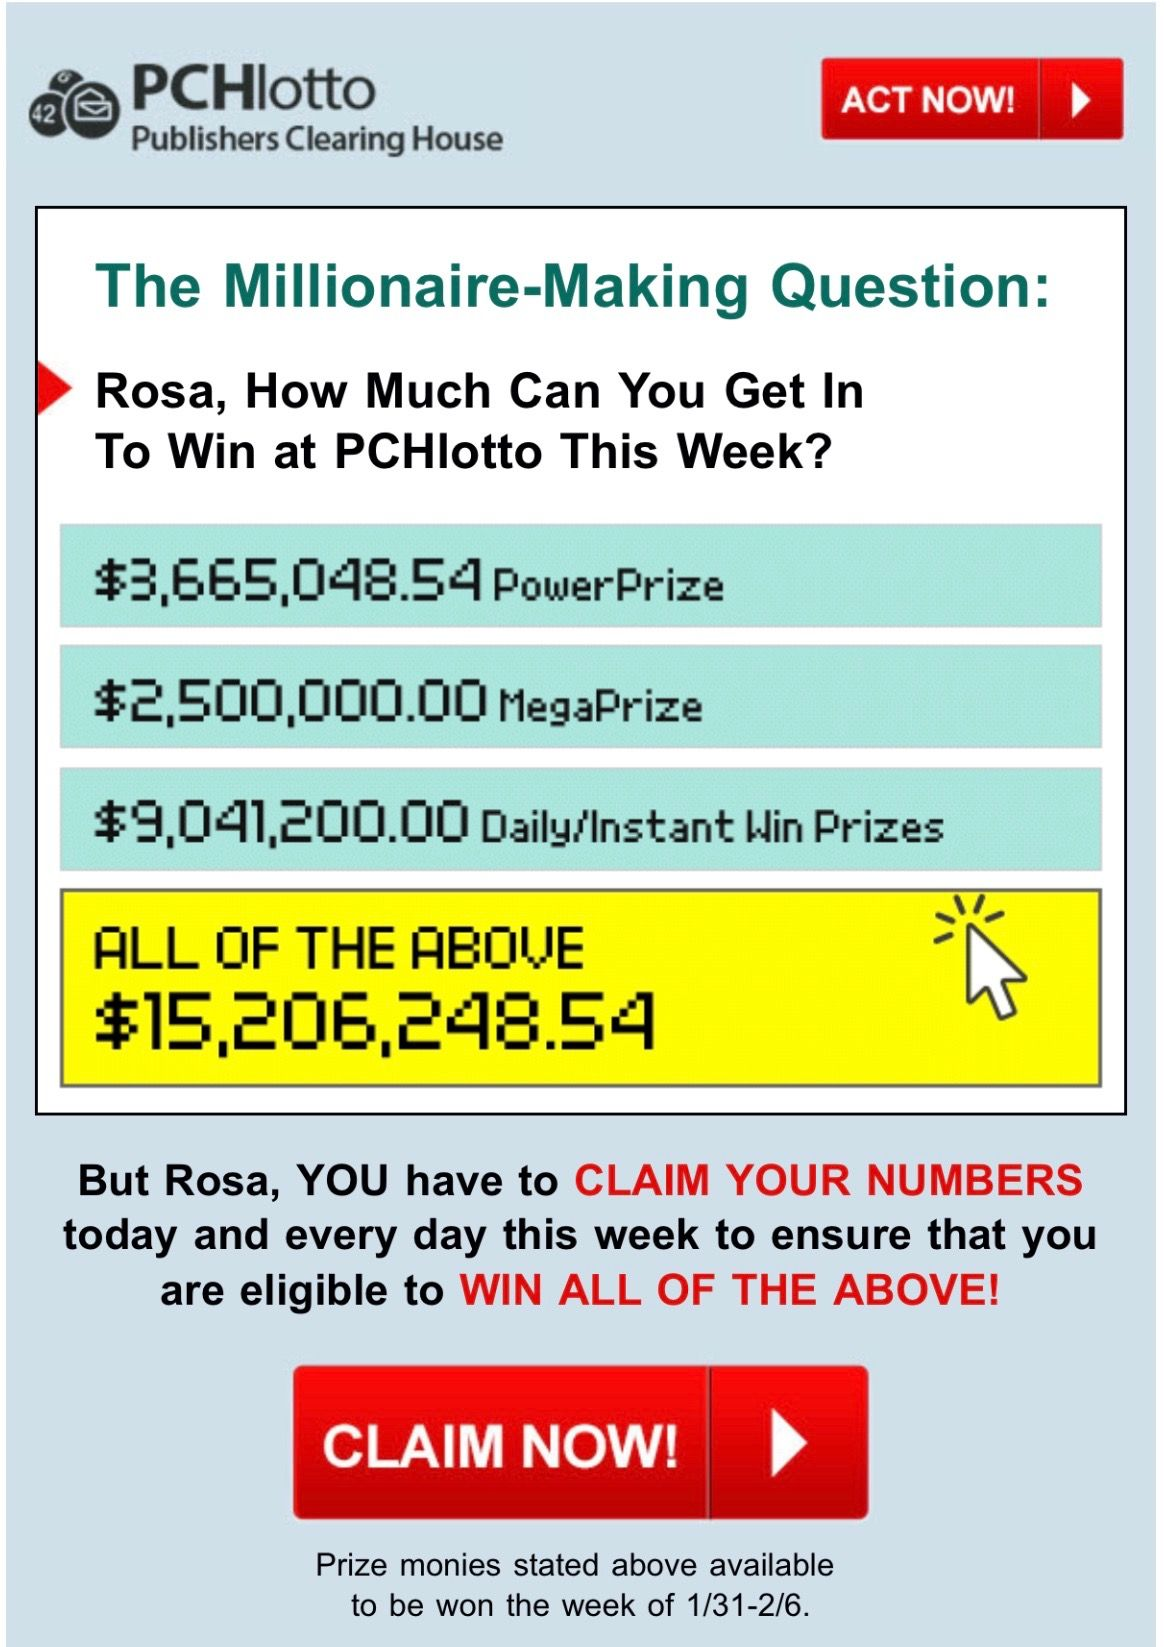 PCH LOTTO NUMBERS MEGAPRIZE & POWERPRIZE & INSTANT WIN PRIZES/I ROSA